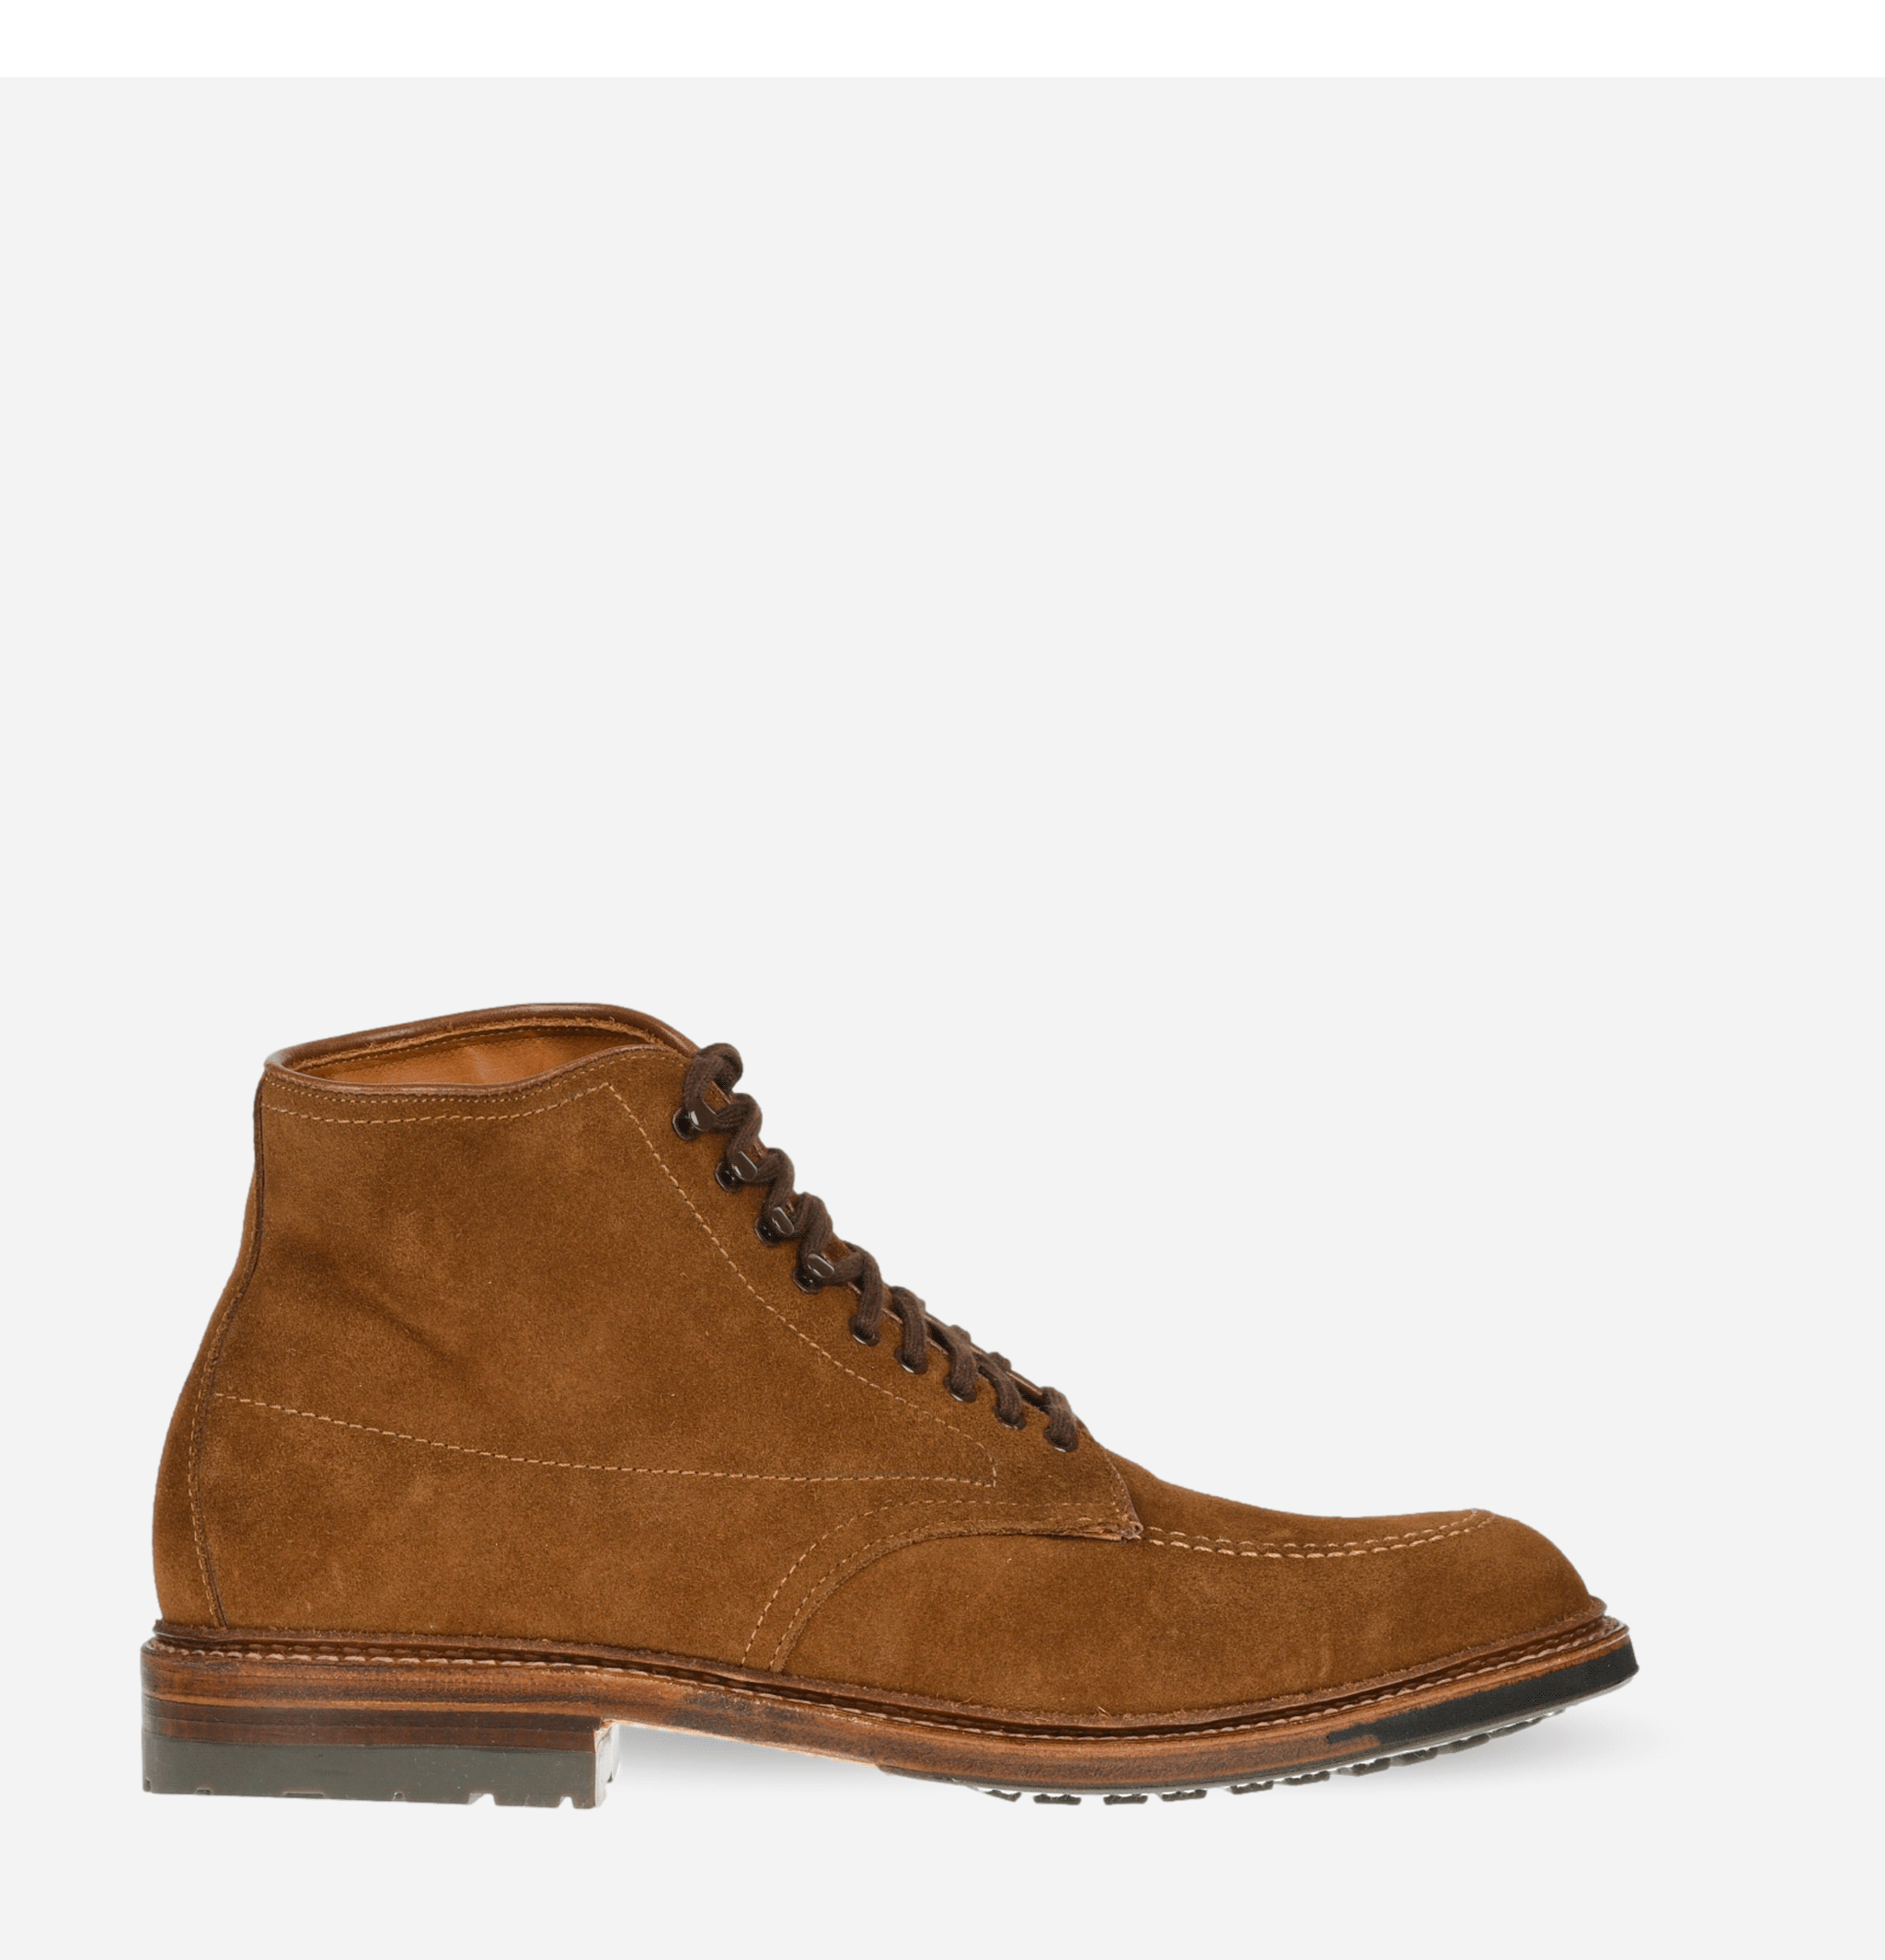 4011 - Indy Boot Snuff